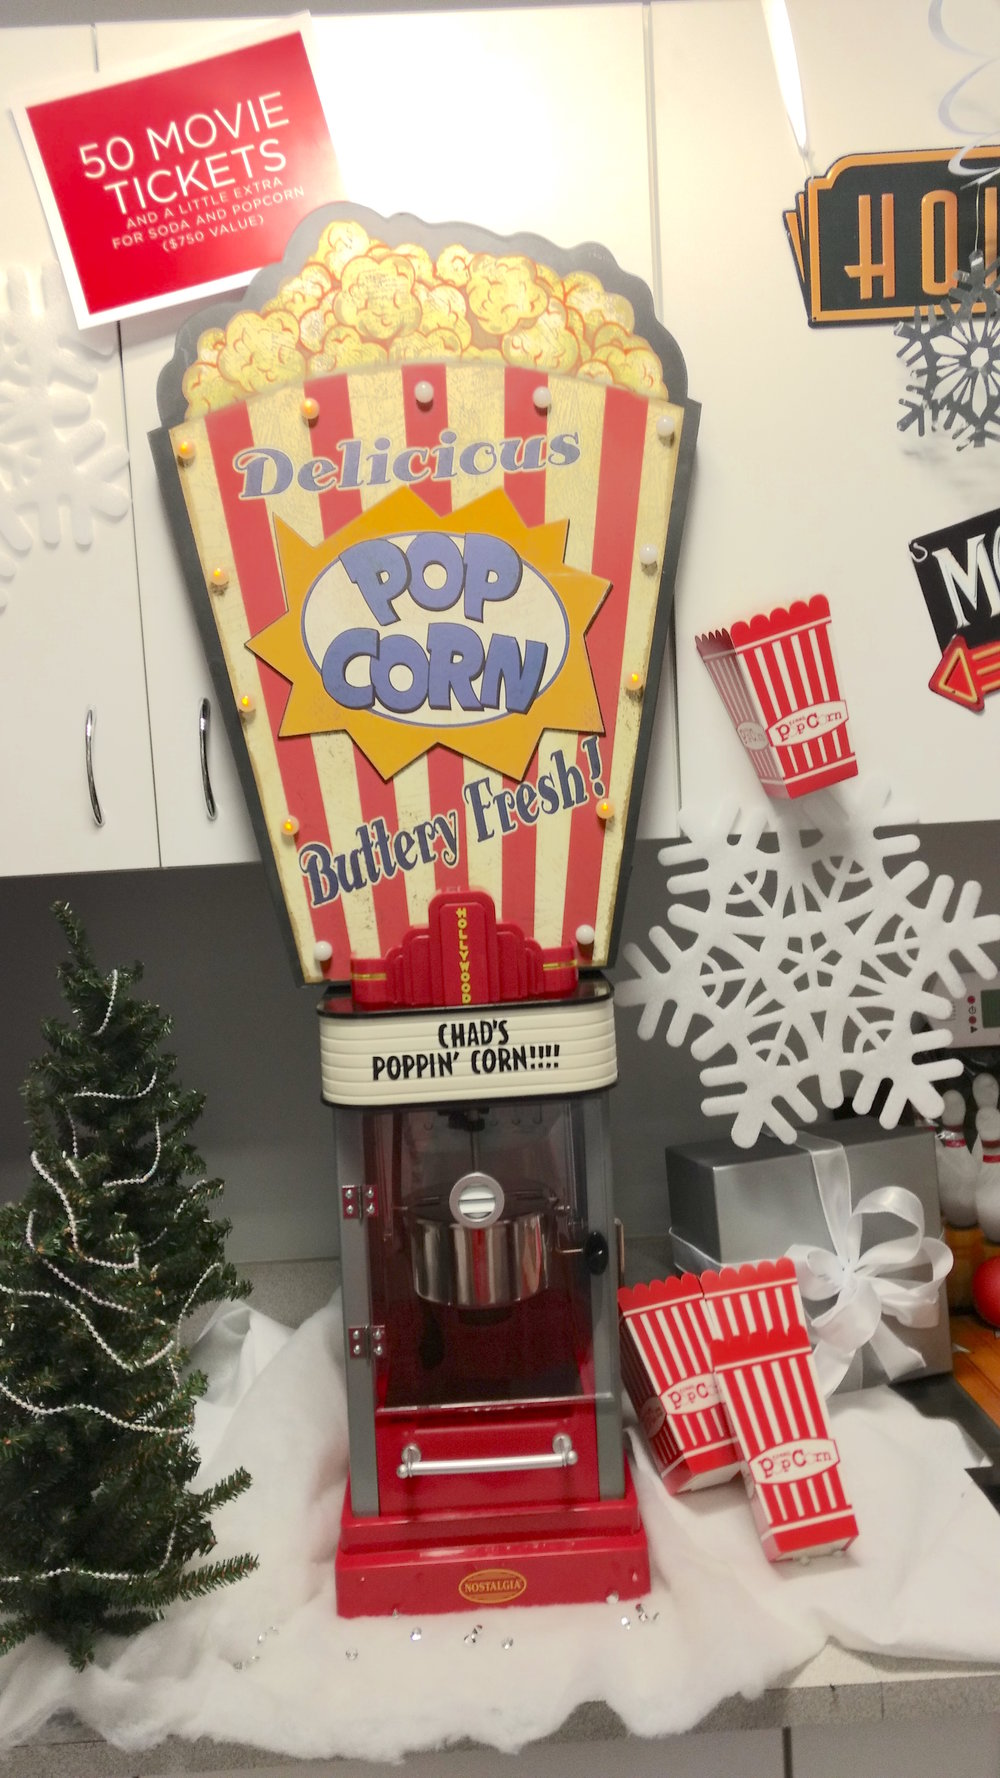 17-Movie Tickets Gift Station.jpg